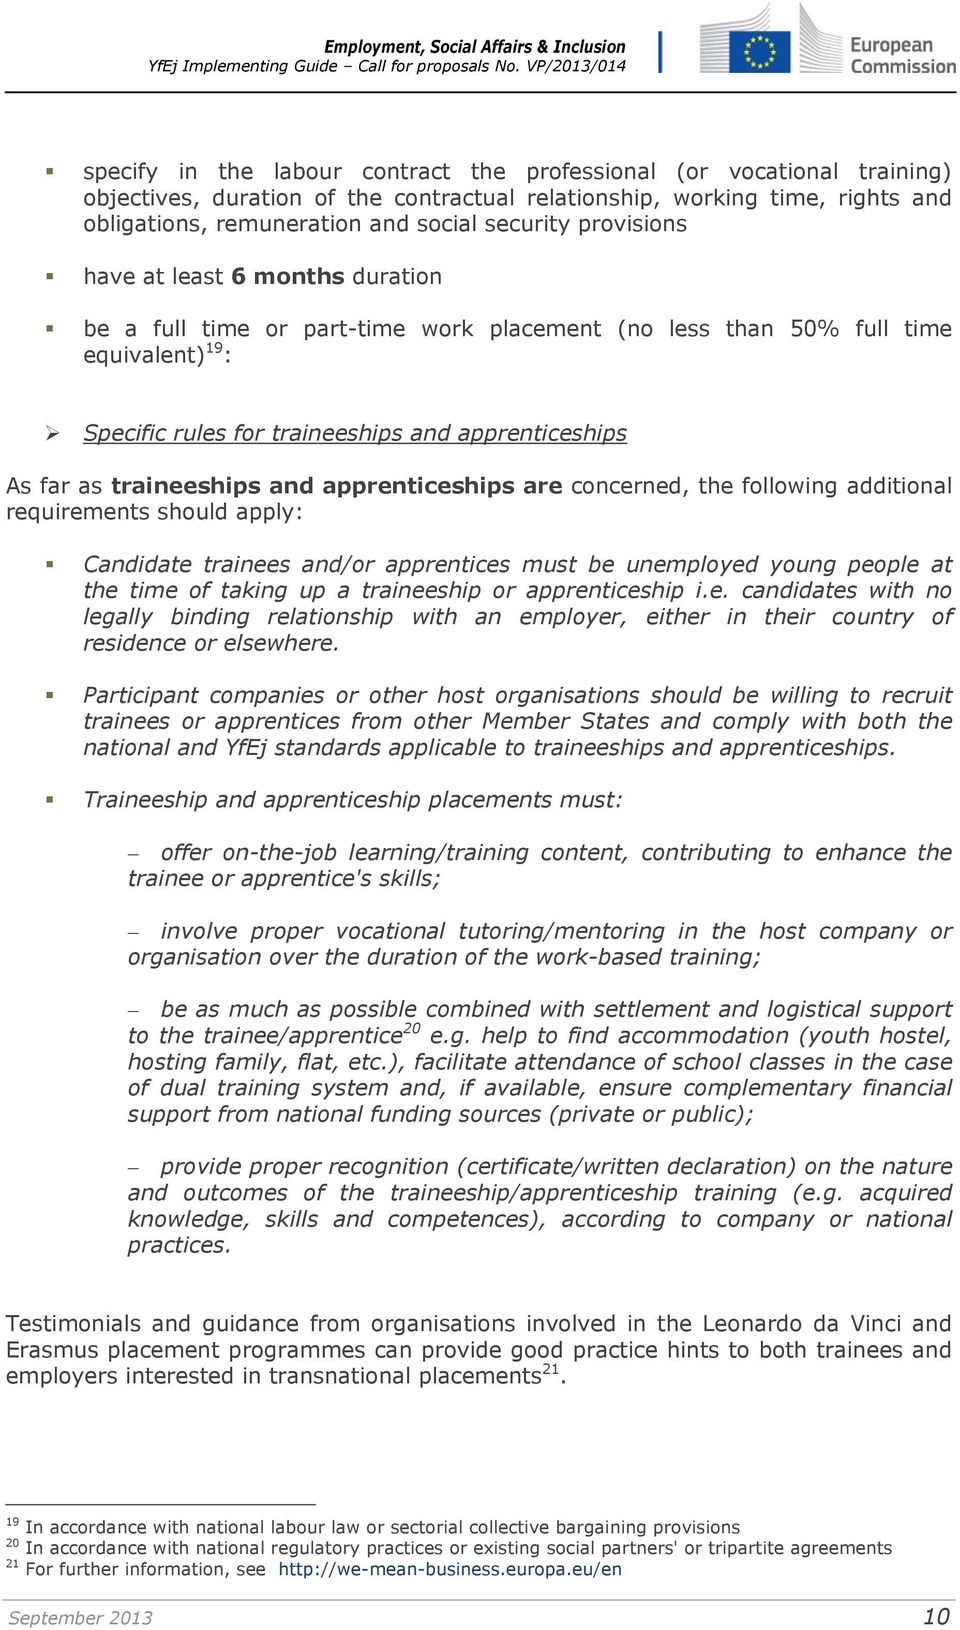 traineeships and apprenticeships are concerned, the following additional requirements should apply: Candidate trainees and/or apprentices must be unemployed young people at the time of taking up a